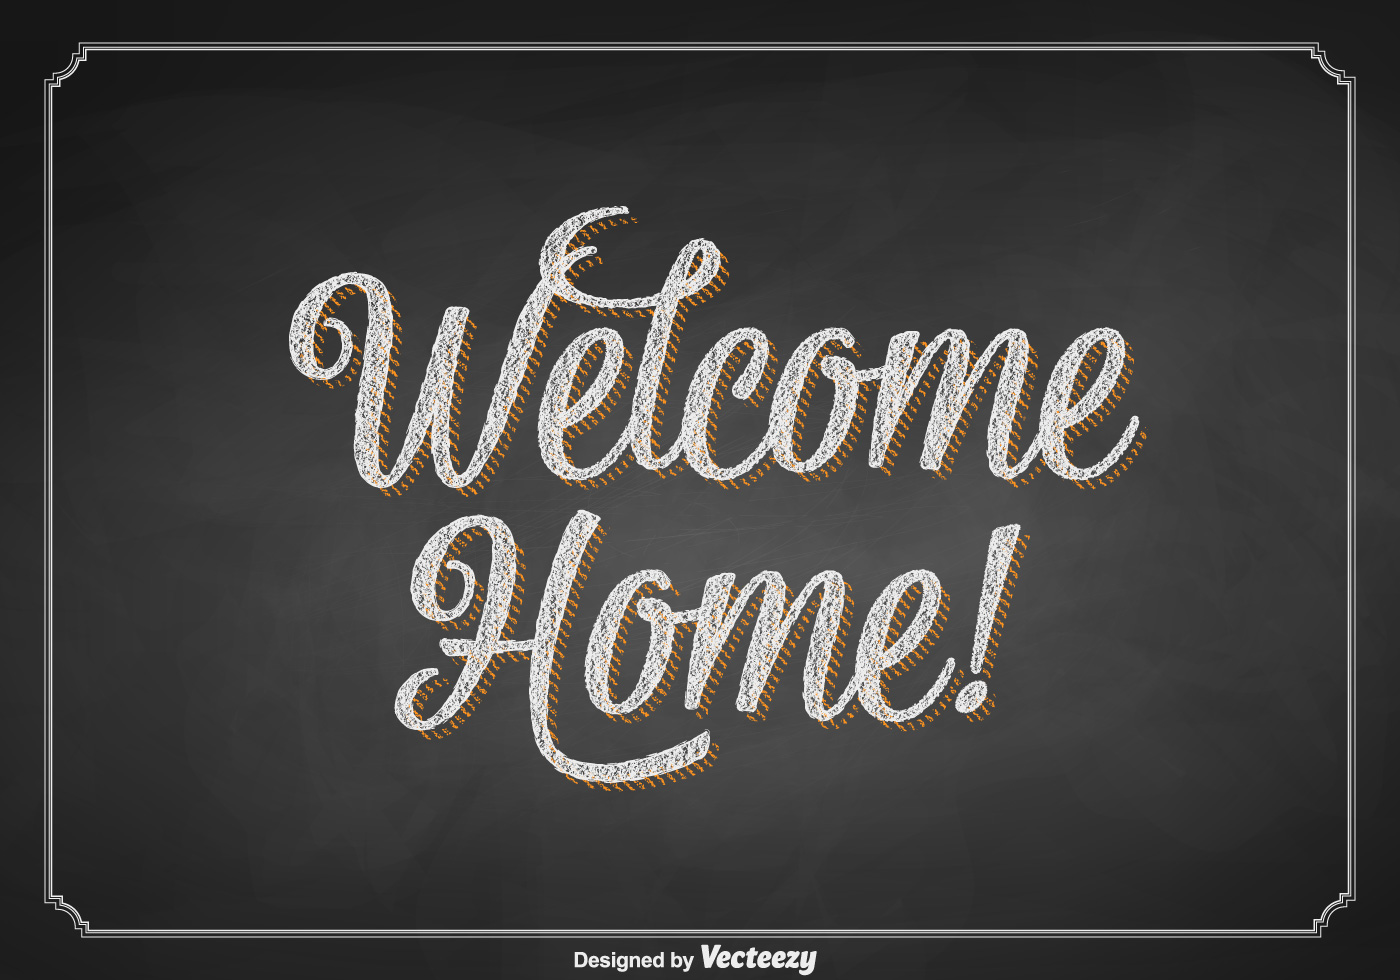 free-vector-welcome-home-chalkboard-sign.jpg